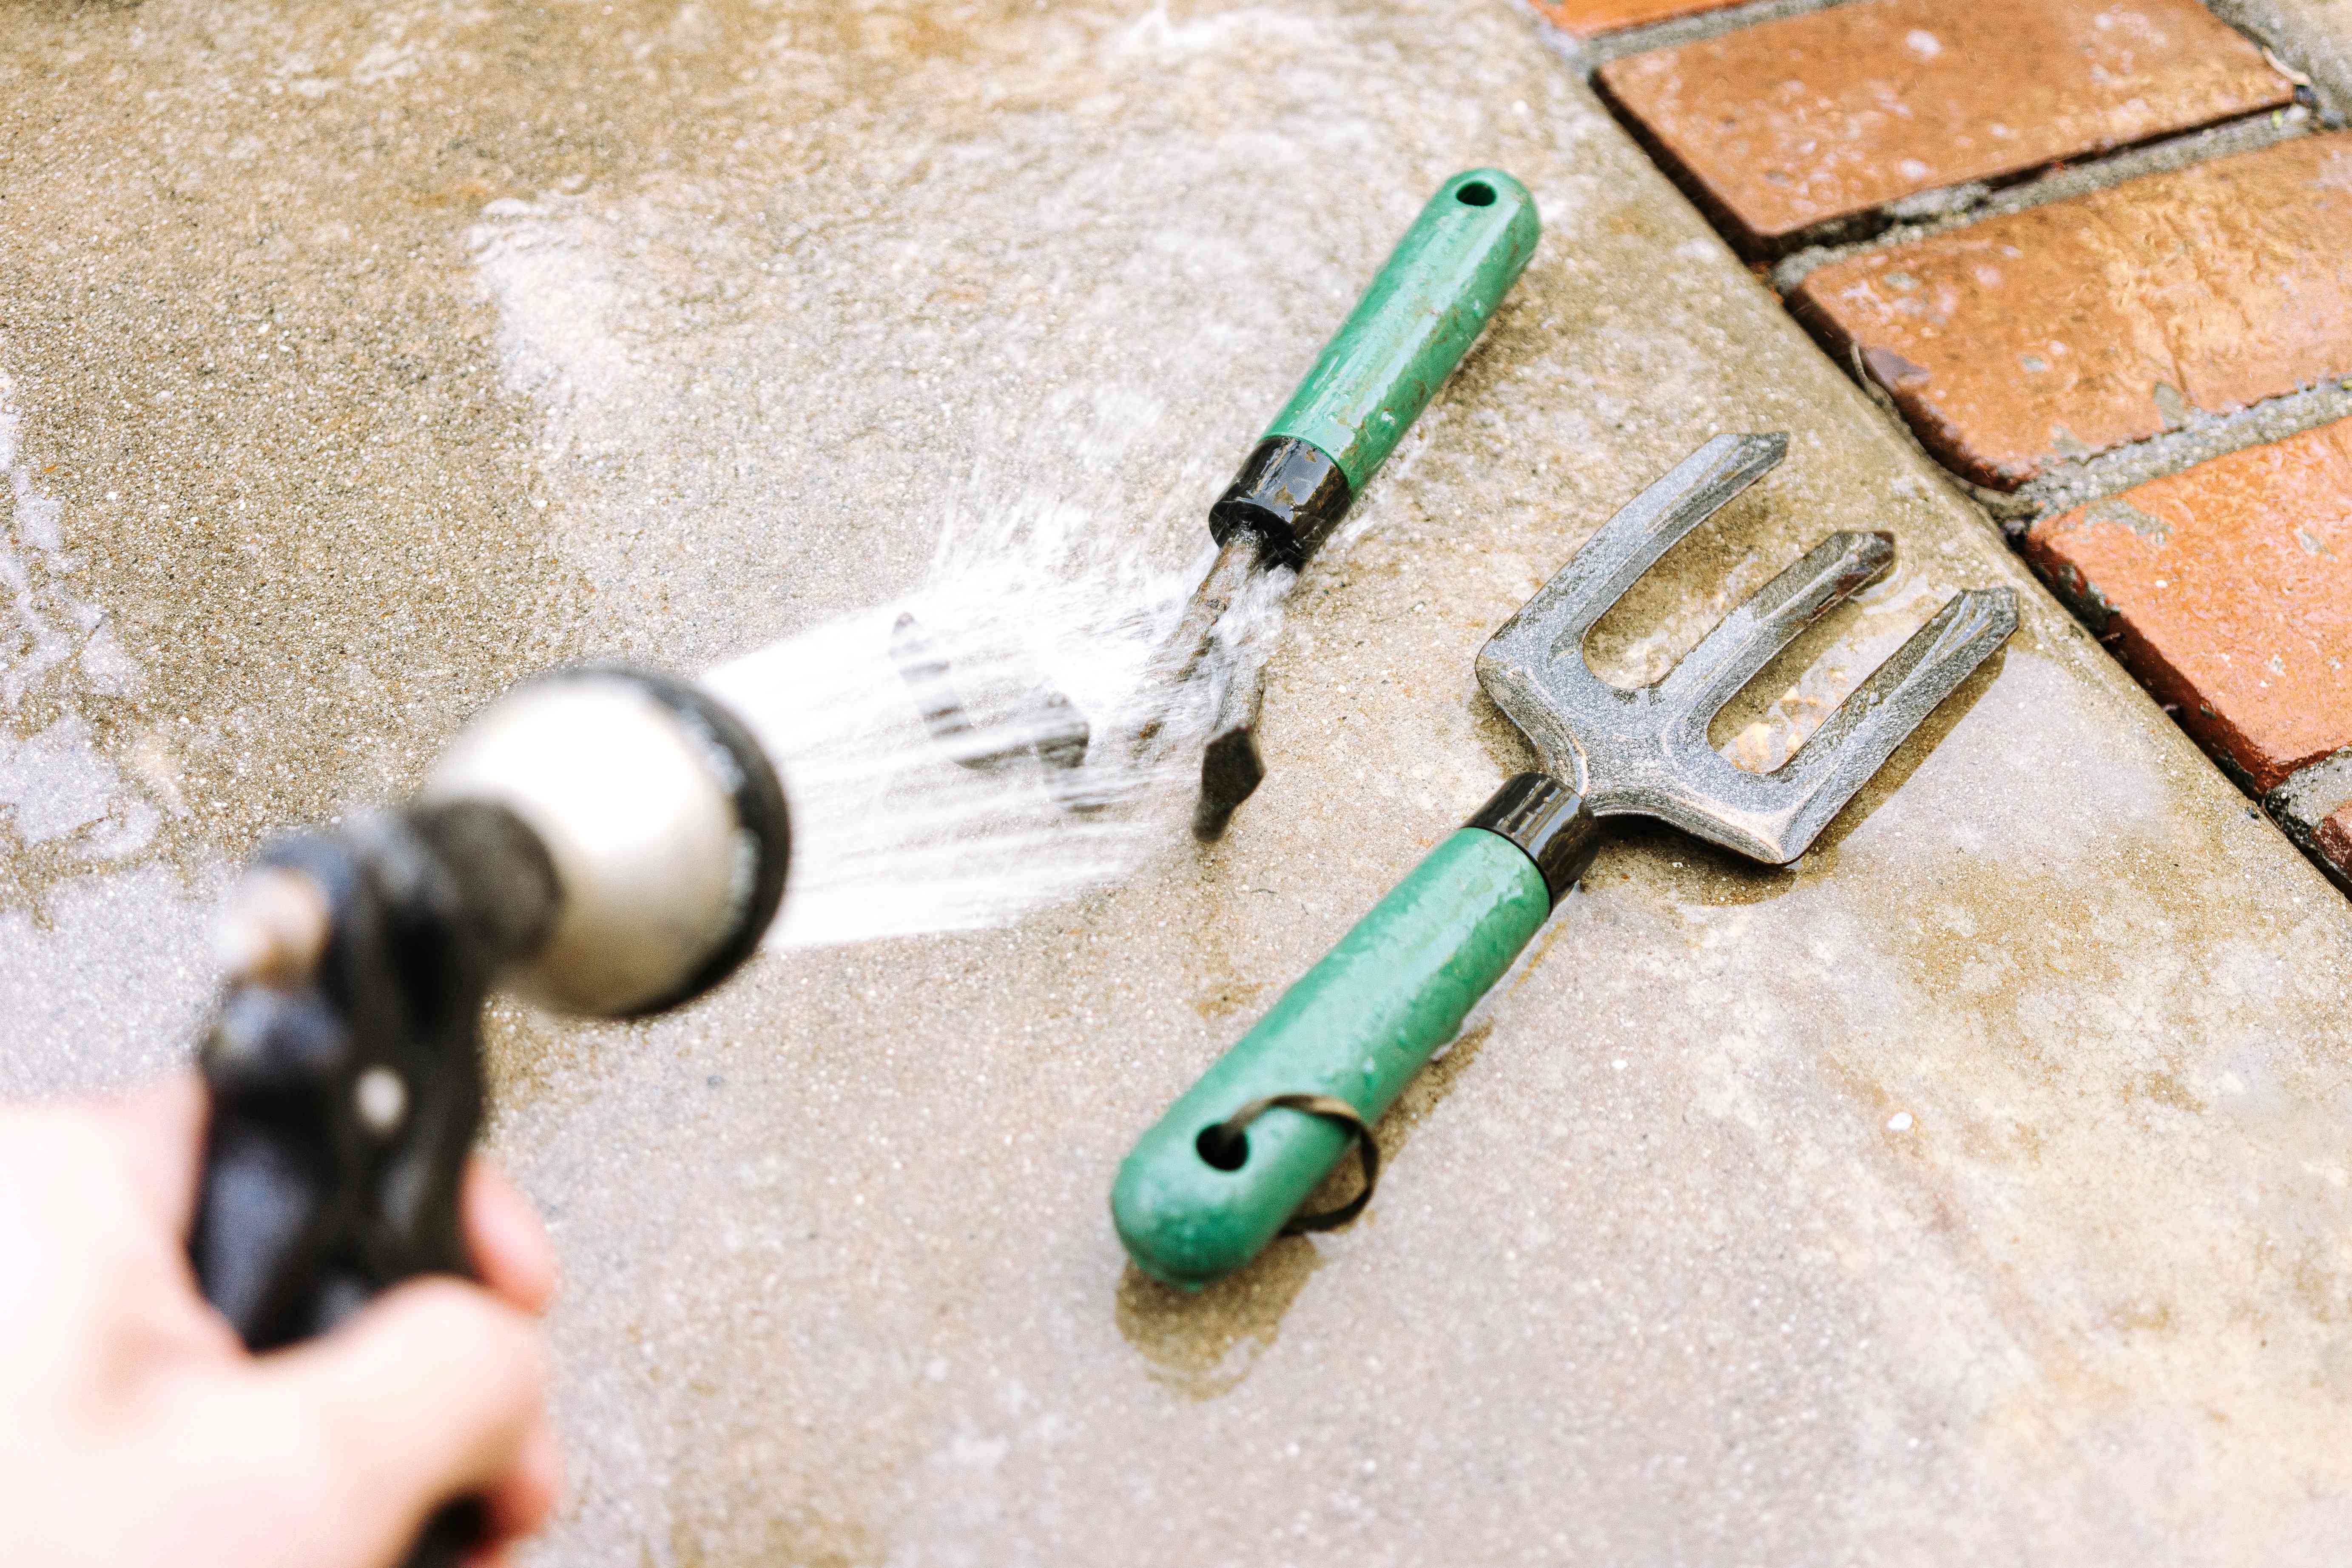 rinsing off tools with a garden hose